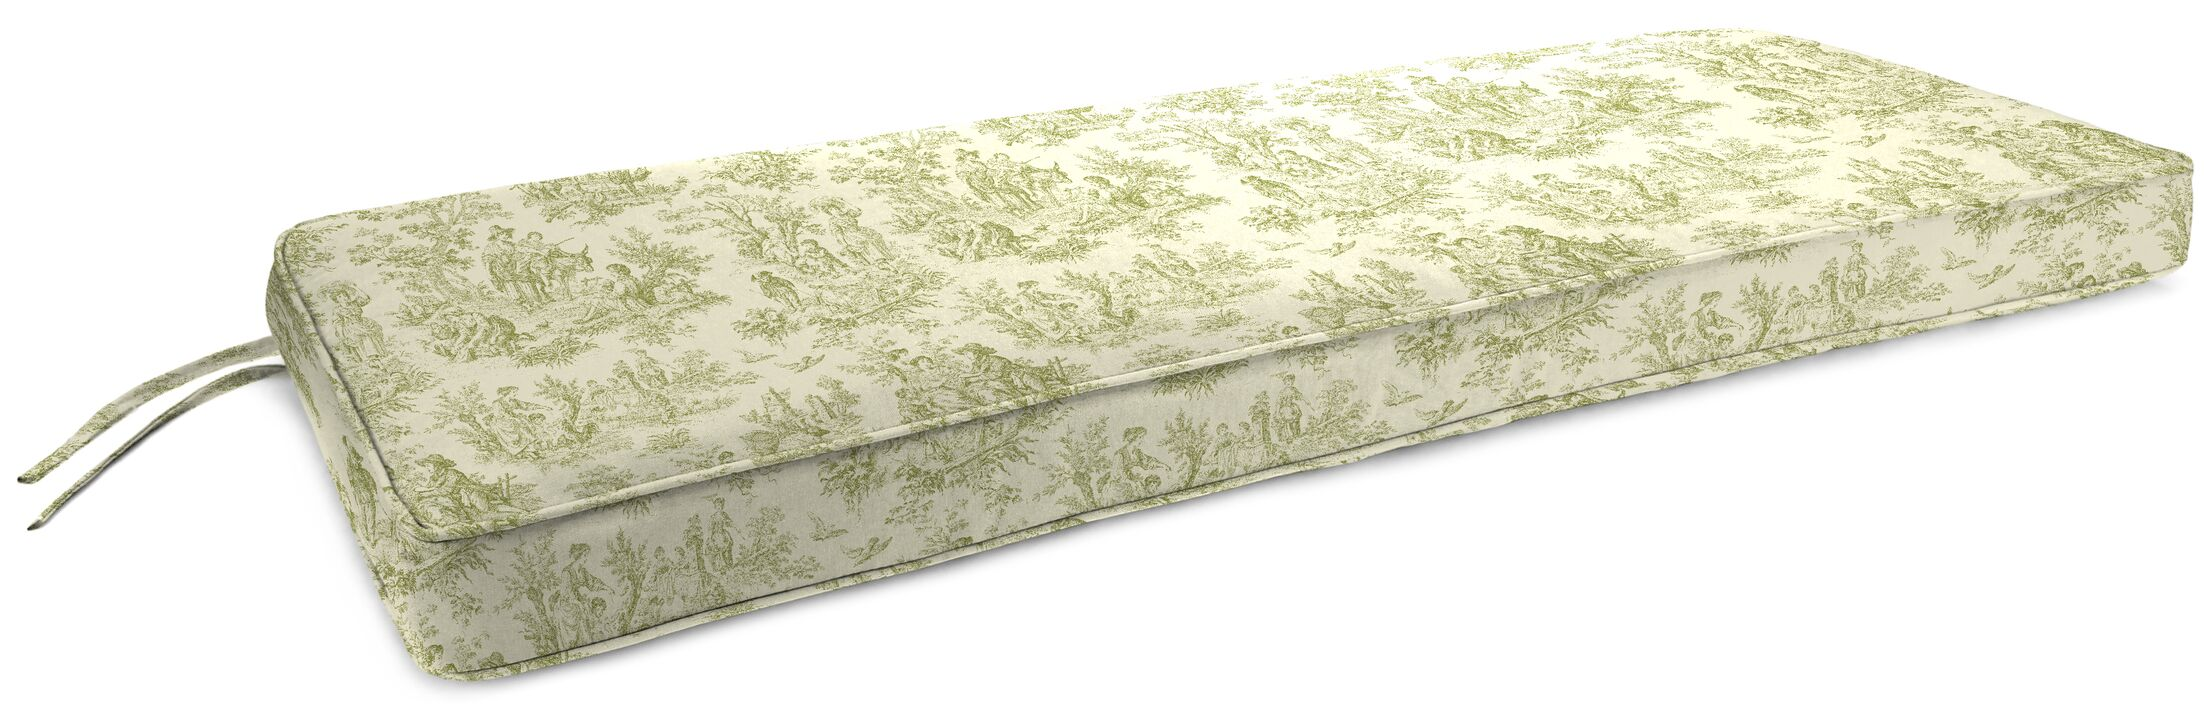 Indoor Bench Cushion Fabric: Charmed Life Tarragon